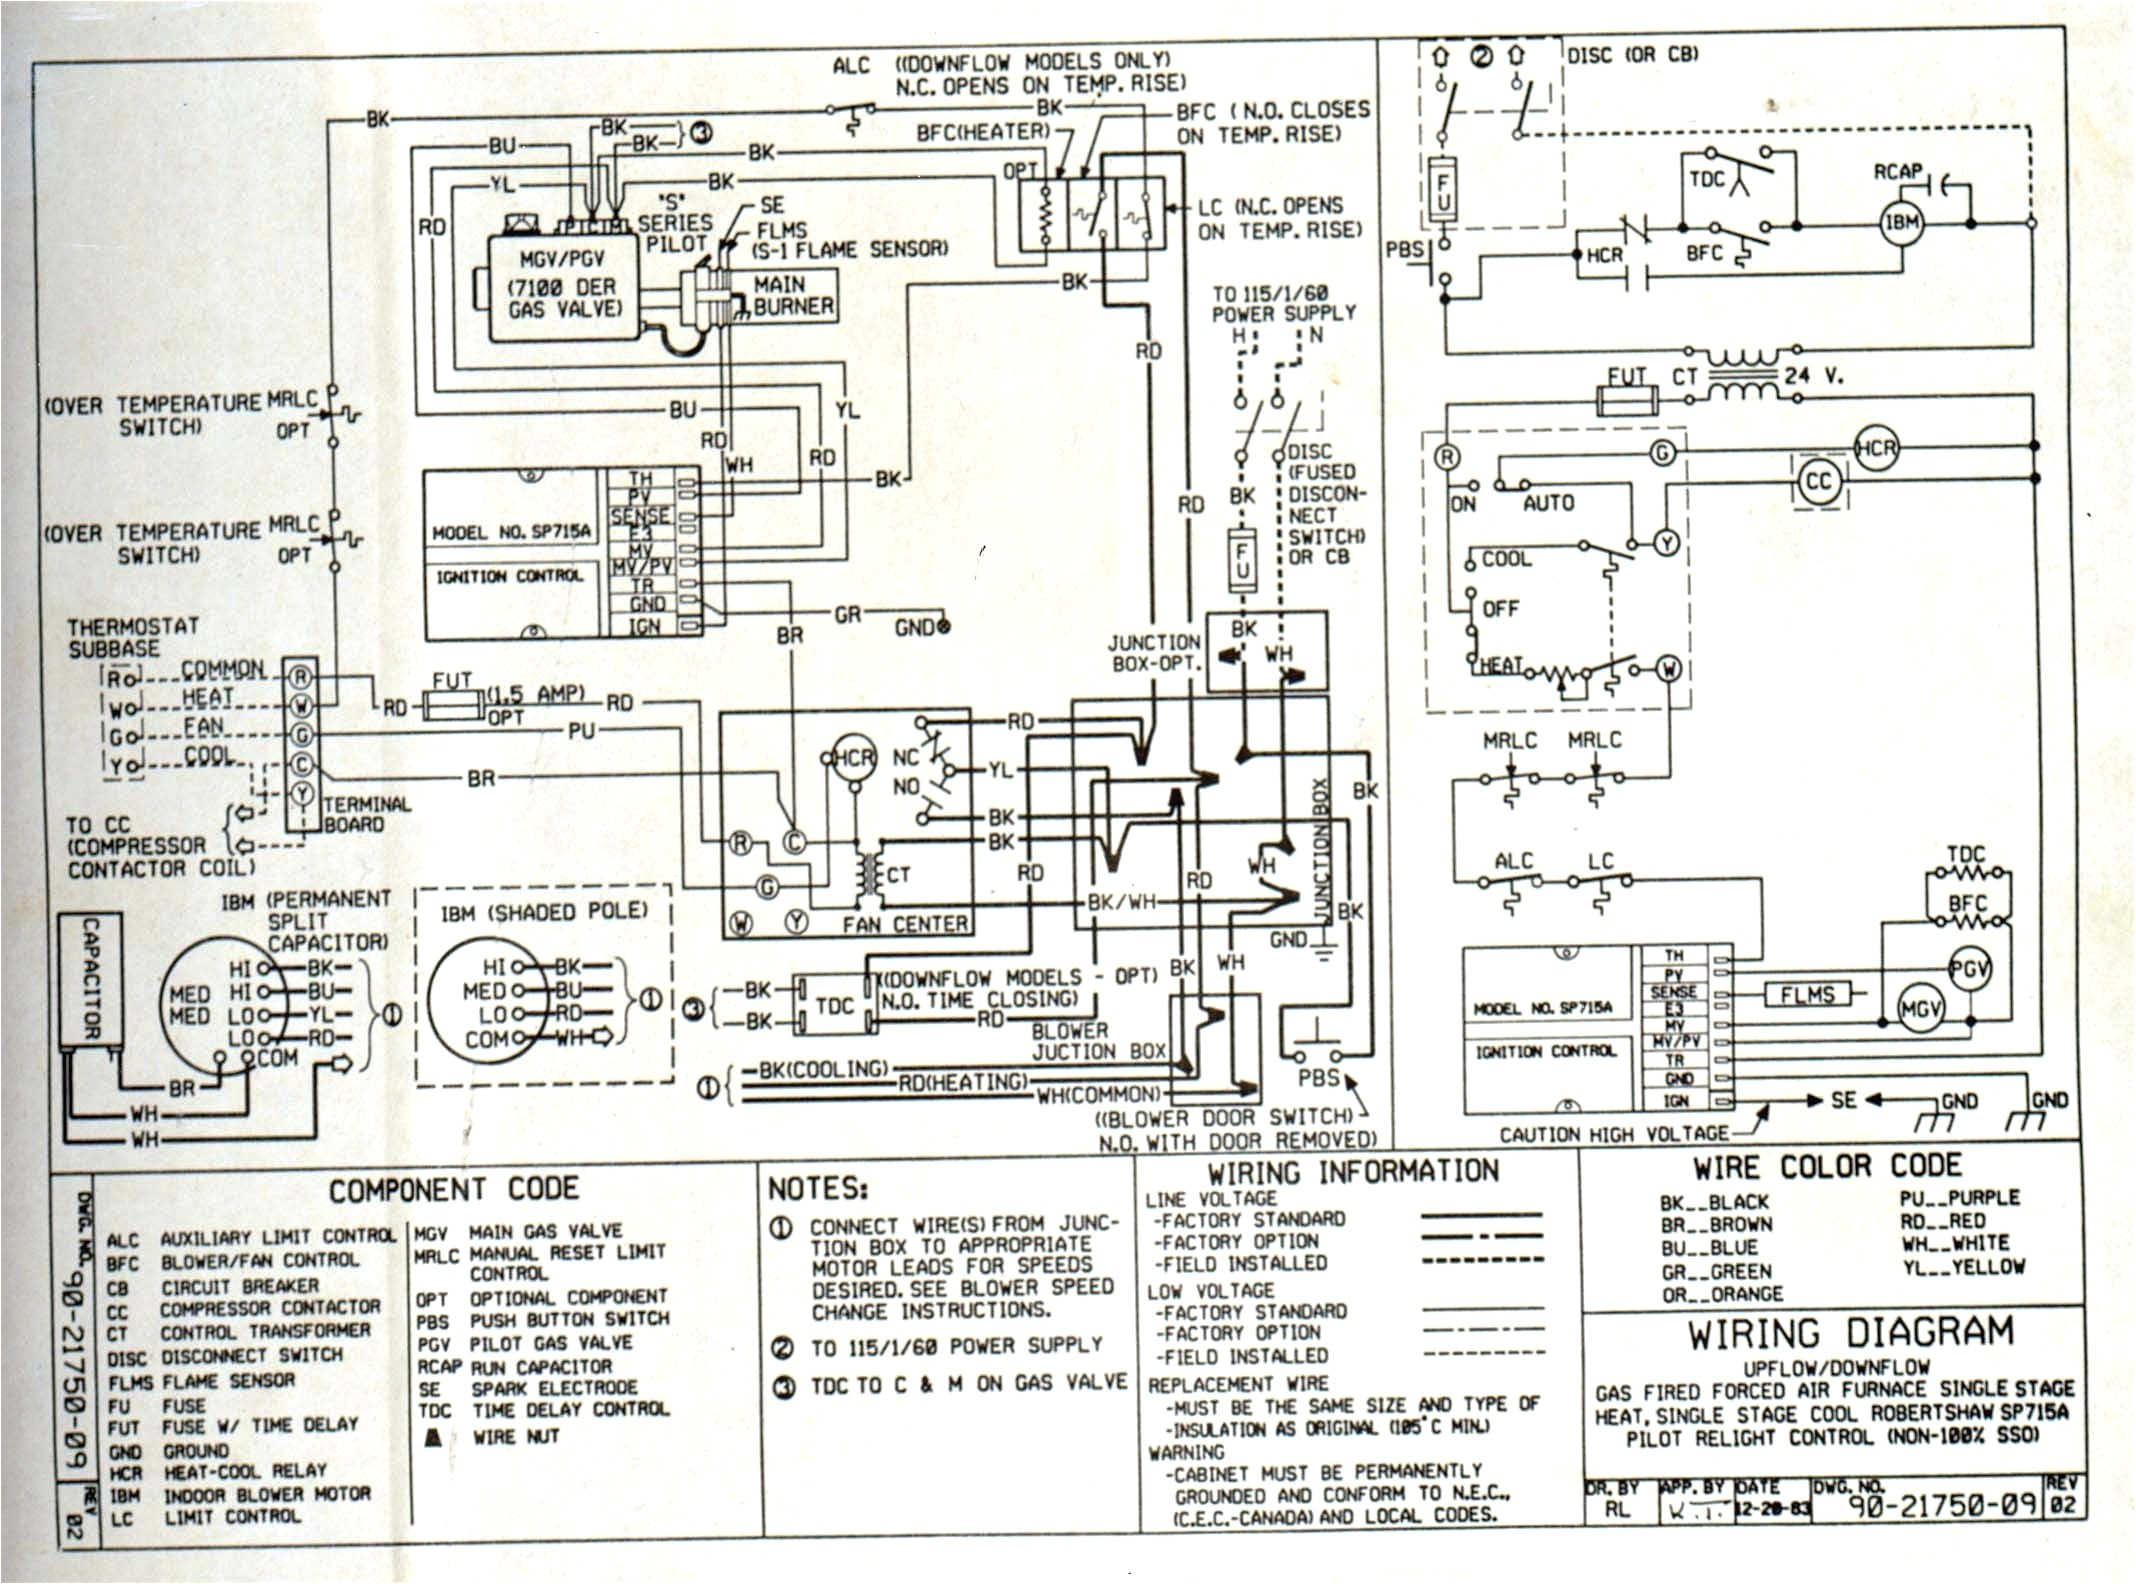 thomas c2 wiring diagram def home wiring diagram thomas bus wiring diagram get free image about wiring diagram